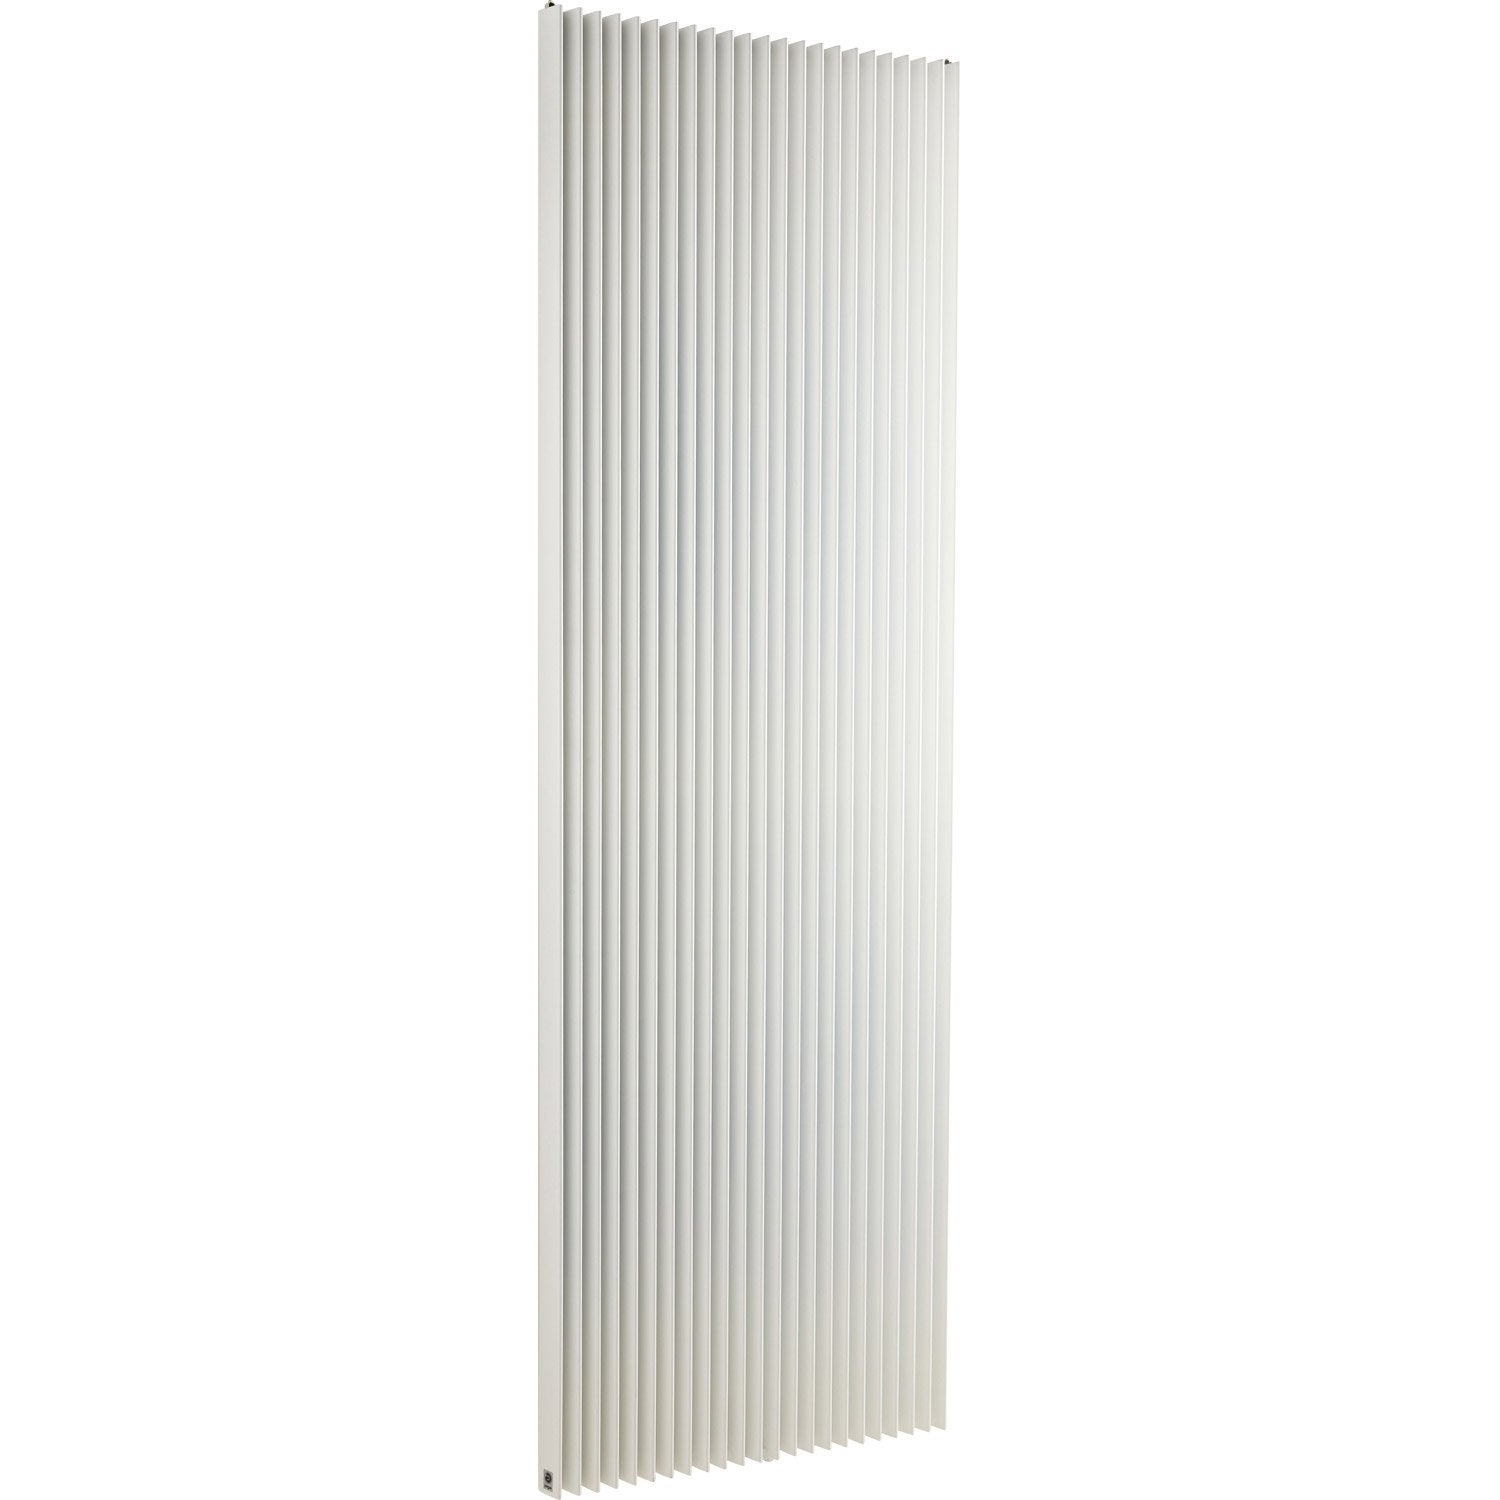 radiateur chauffage central iguana blanc cm 2128 w leroy merlin. Black Bedroom Furniture Sets. Home Design Ideas